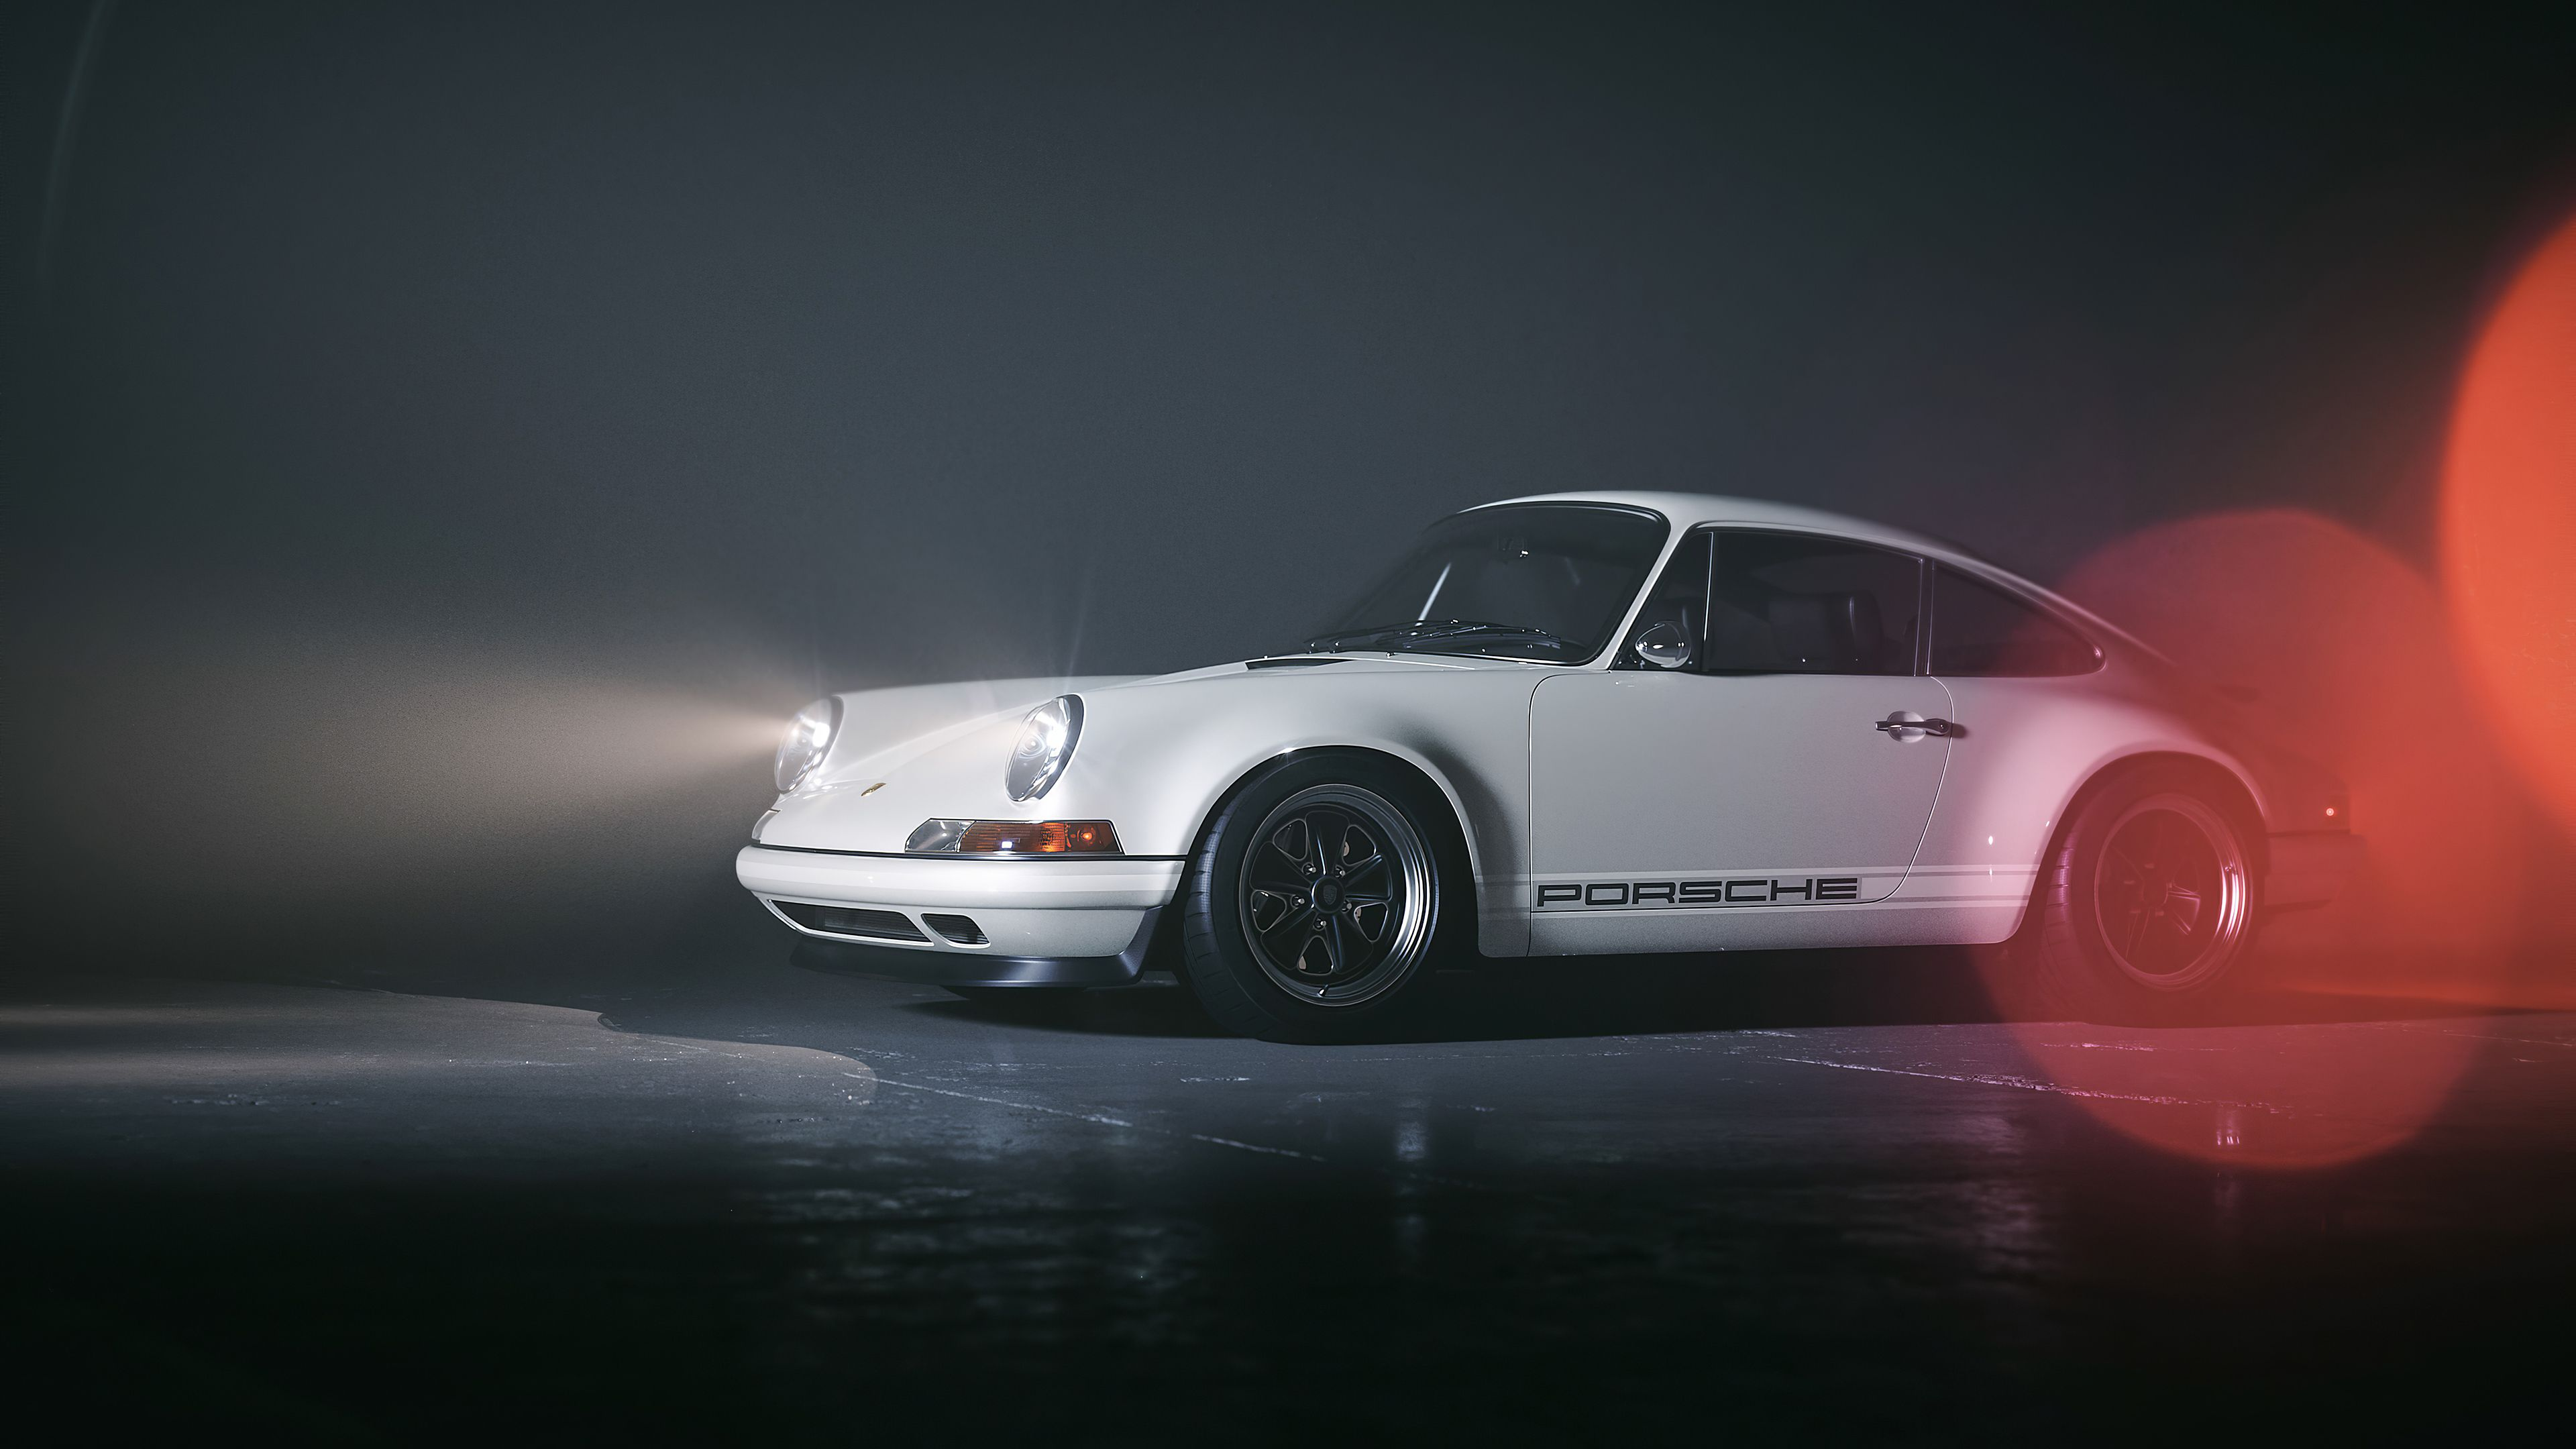 Pin By Rodrigo Pea A On Autos Deportivos In 2020 Car Wallpapers Porsche Hd Wallpaper